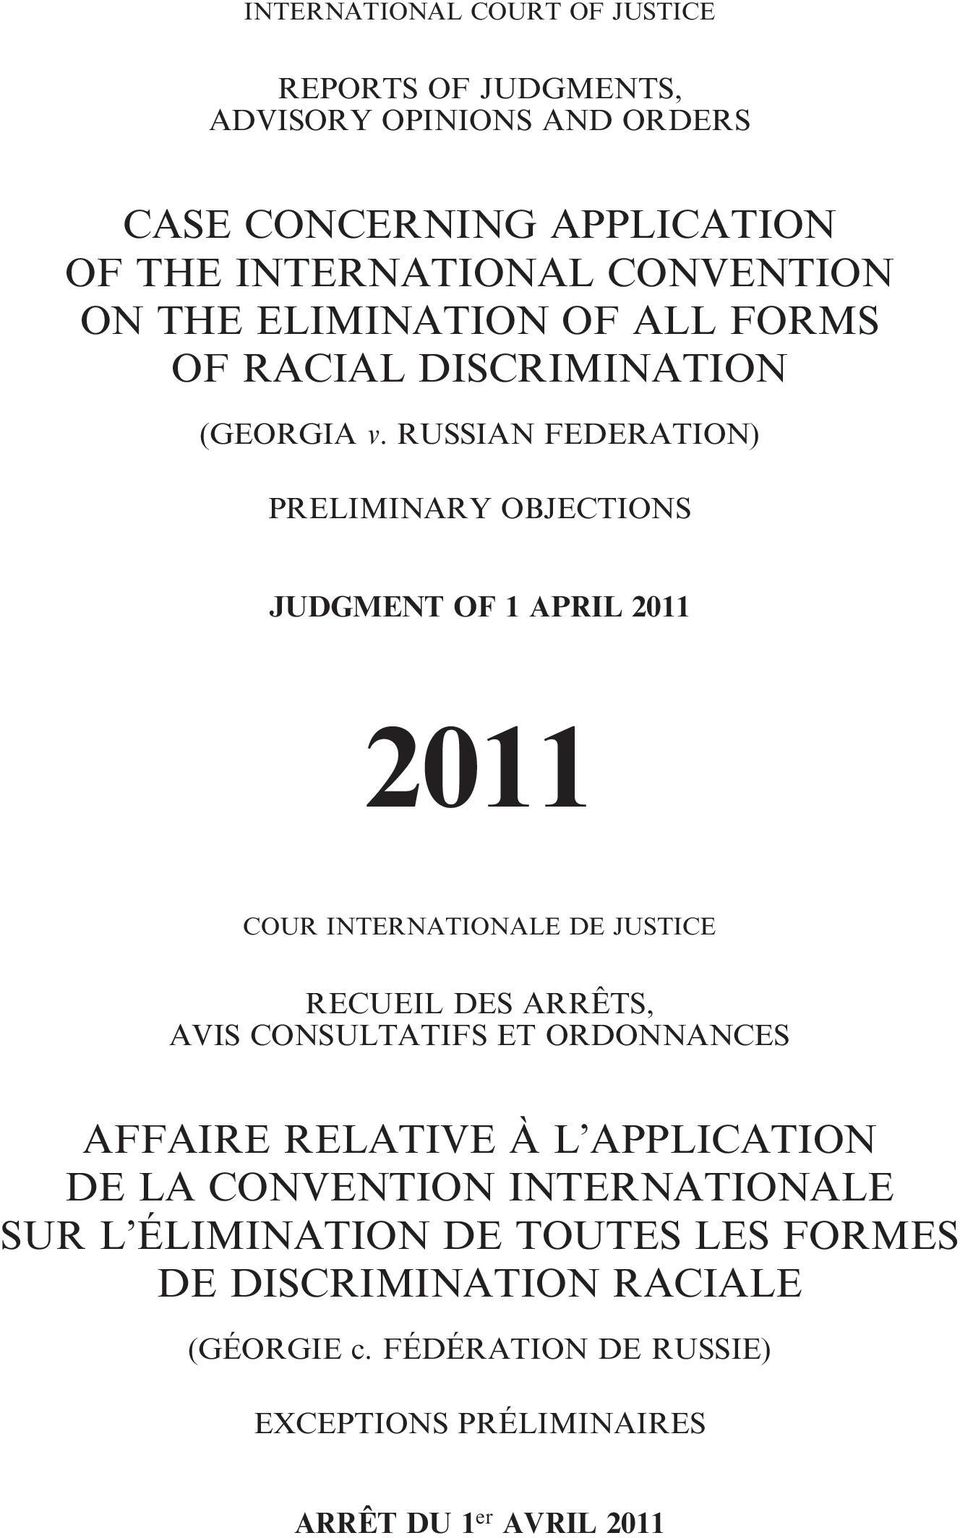 RUSSIAN FEDERATION) PRELIMINARY OBJECTIONS JUDGMENT OF 1 APRIL 2011 2011 COUR INTERNATIONALE DE JUSTICE RECUEIL DES ARRÊTS, AVIS CONSULTATIFS ET